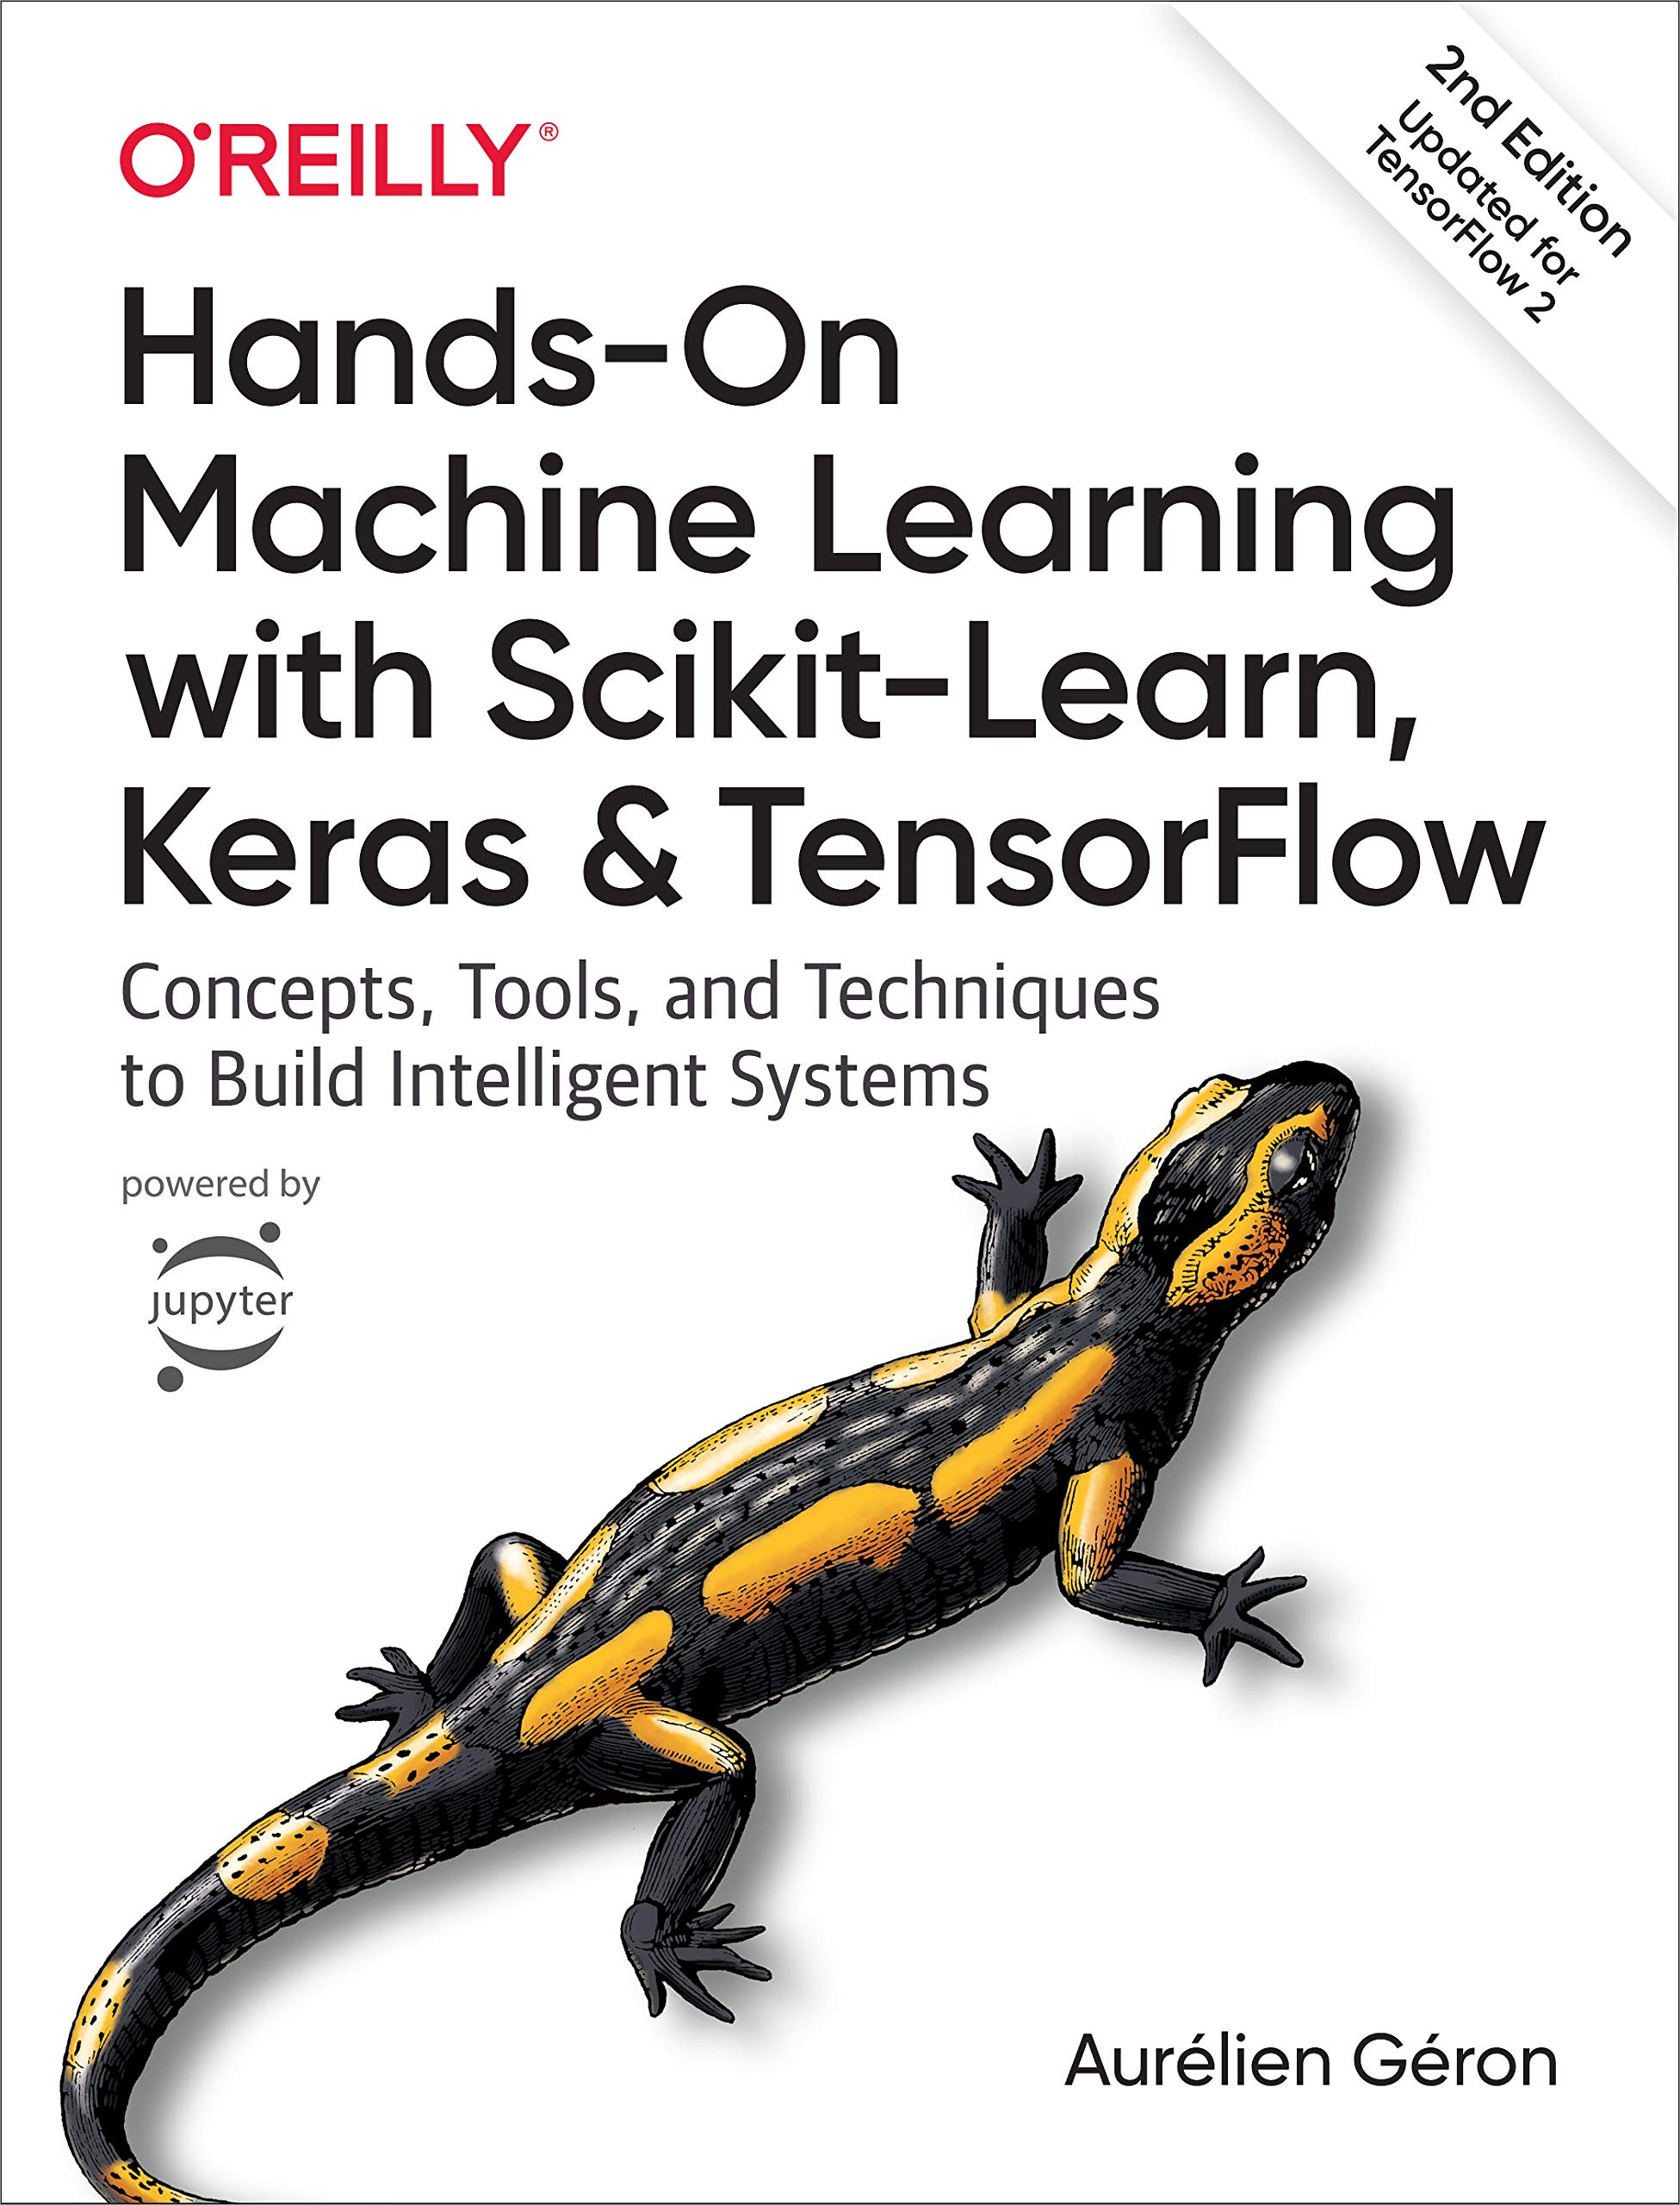 Hands-On Machine Learning with Scikit-Learn, Keras, and TensorFlow: Concepts, Tools, and Techniques to Build Intelligent Systems 2nd Edition